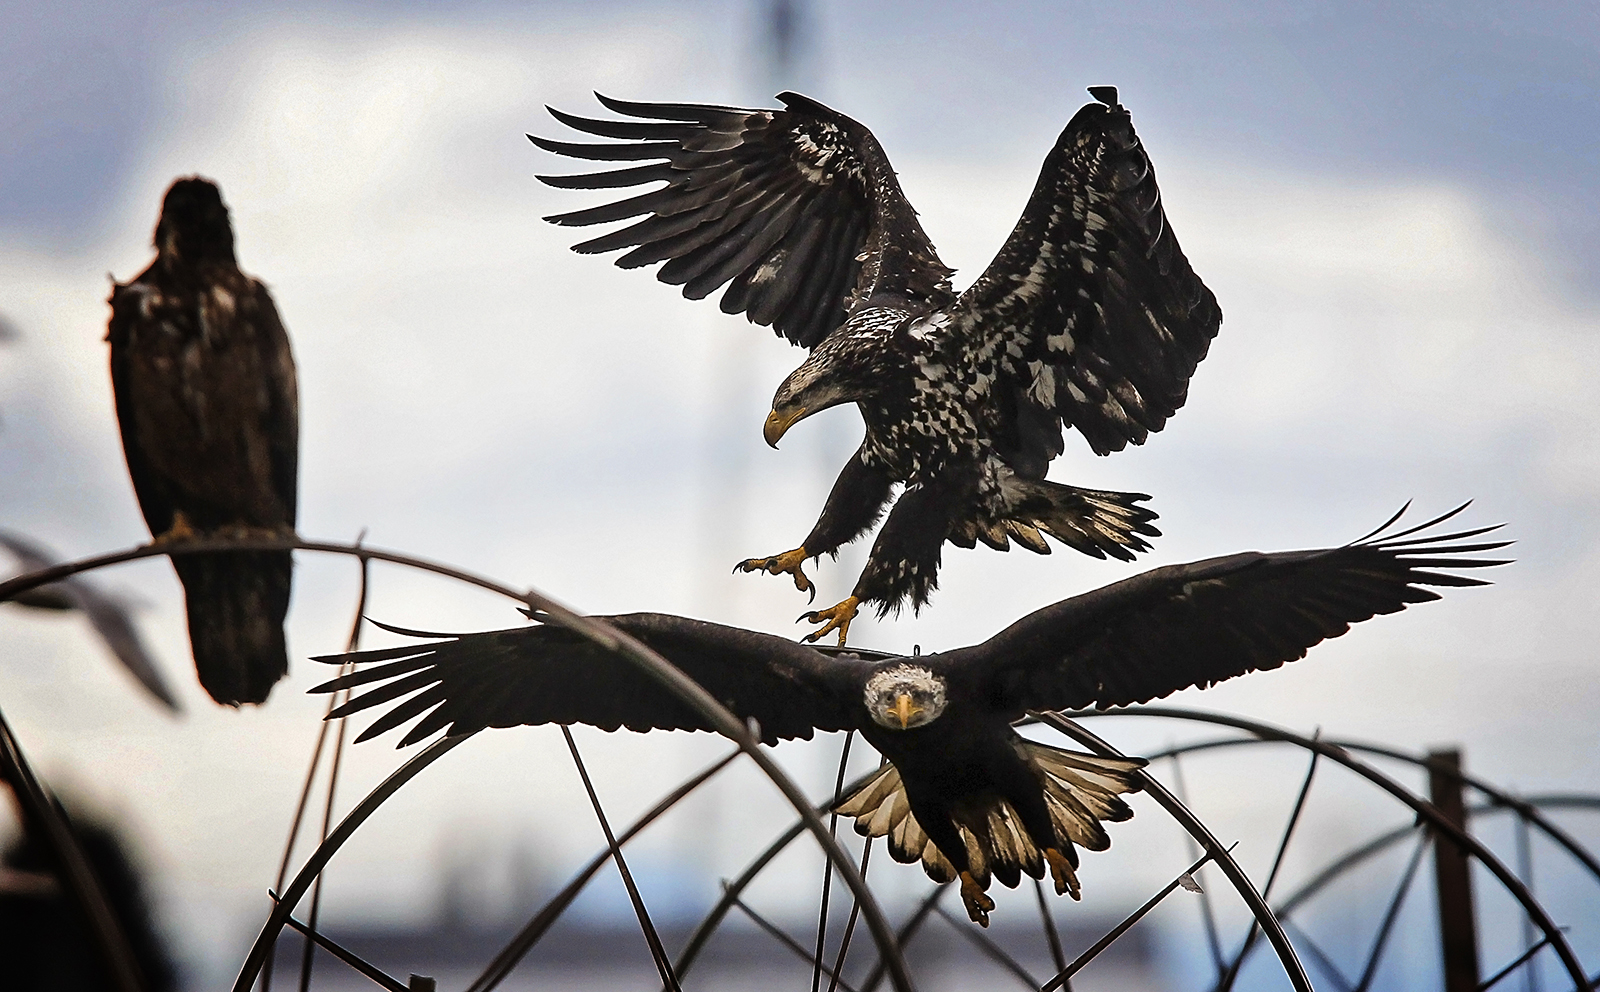 Golden eagles and bald eagles fight over food in Delta, British Columbia